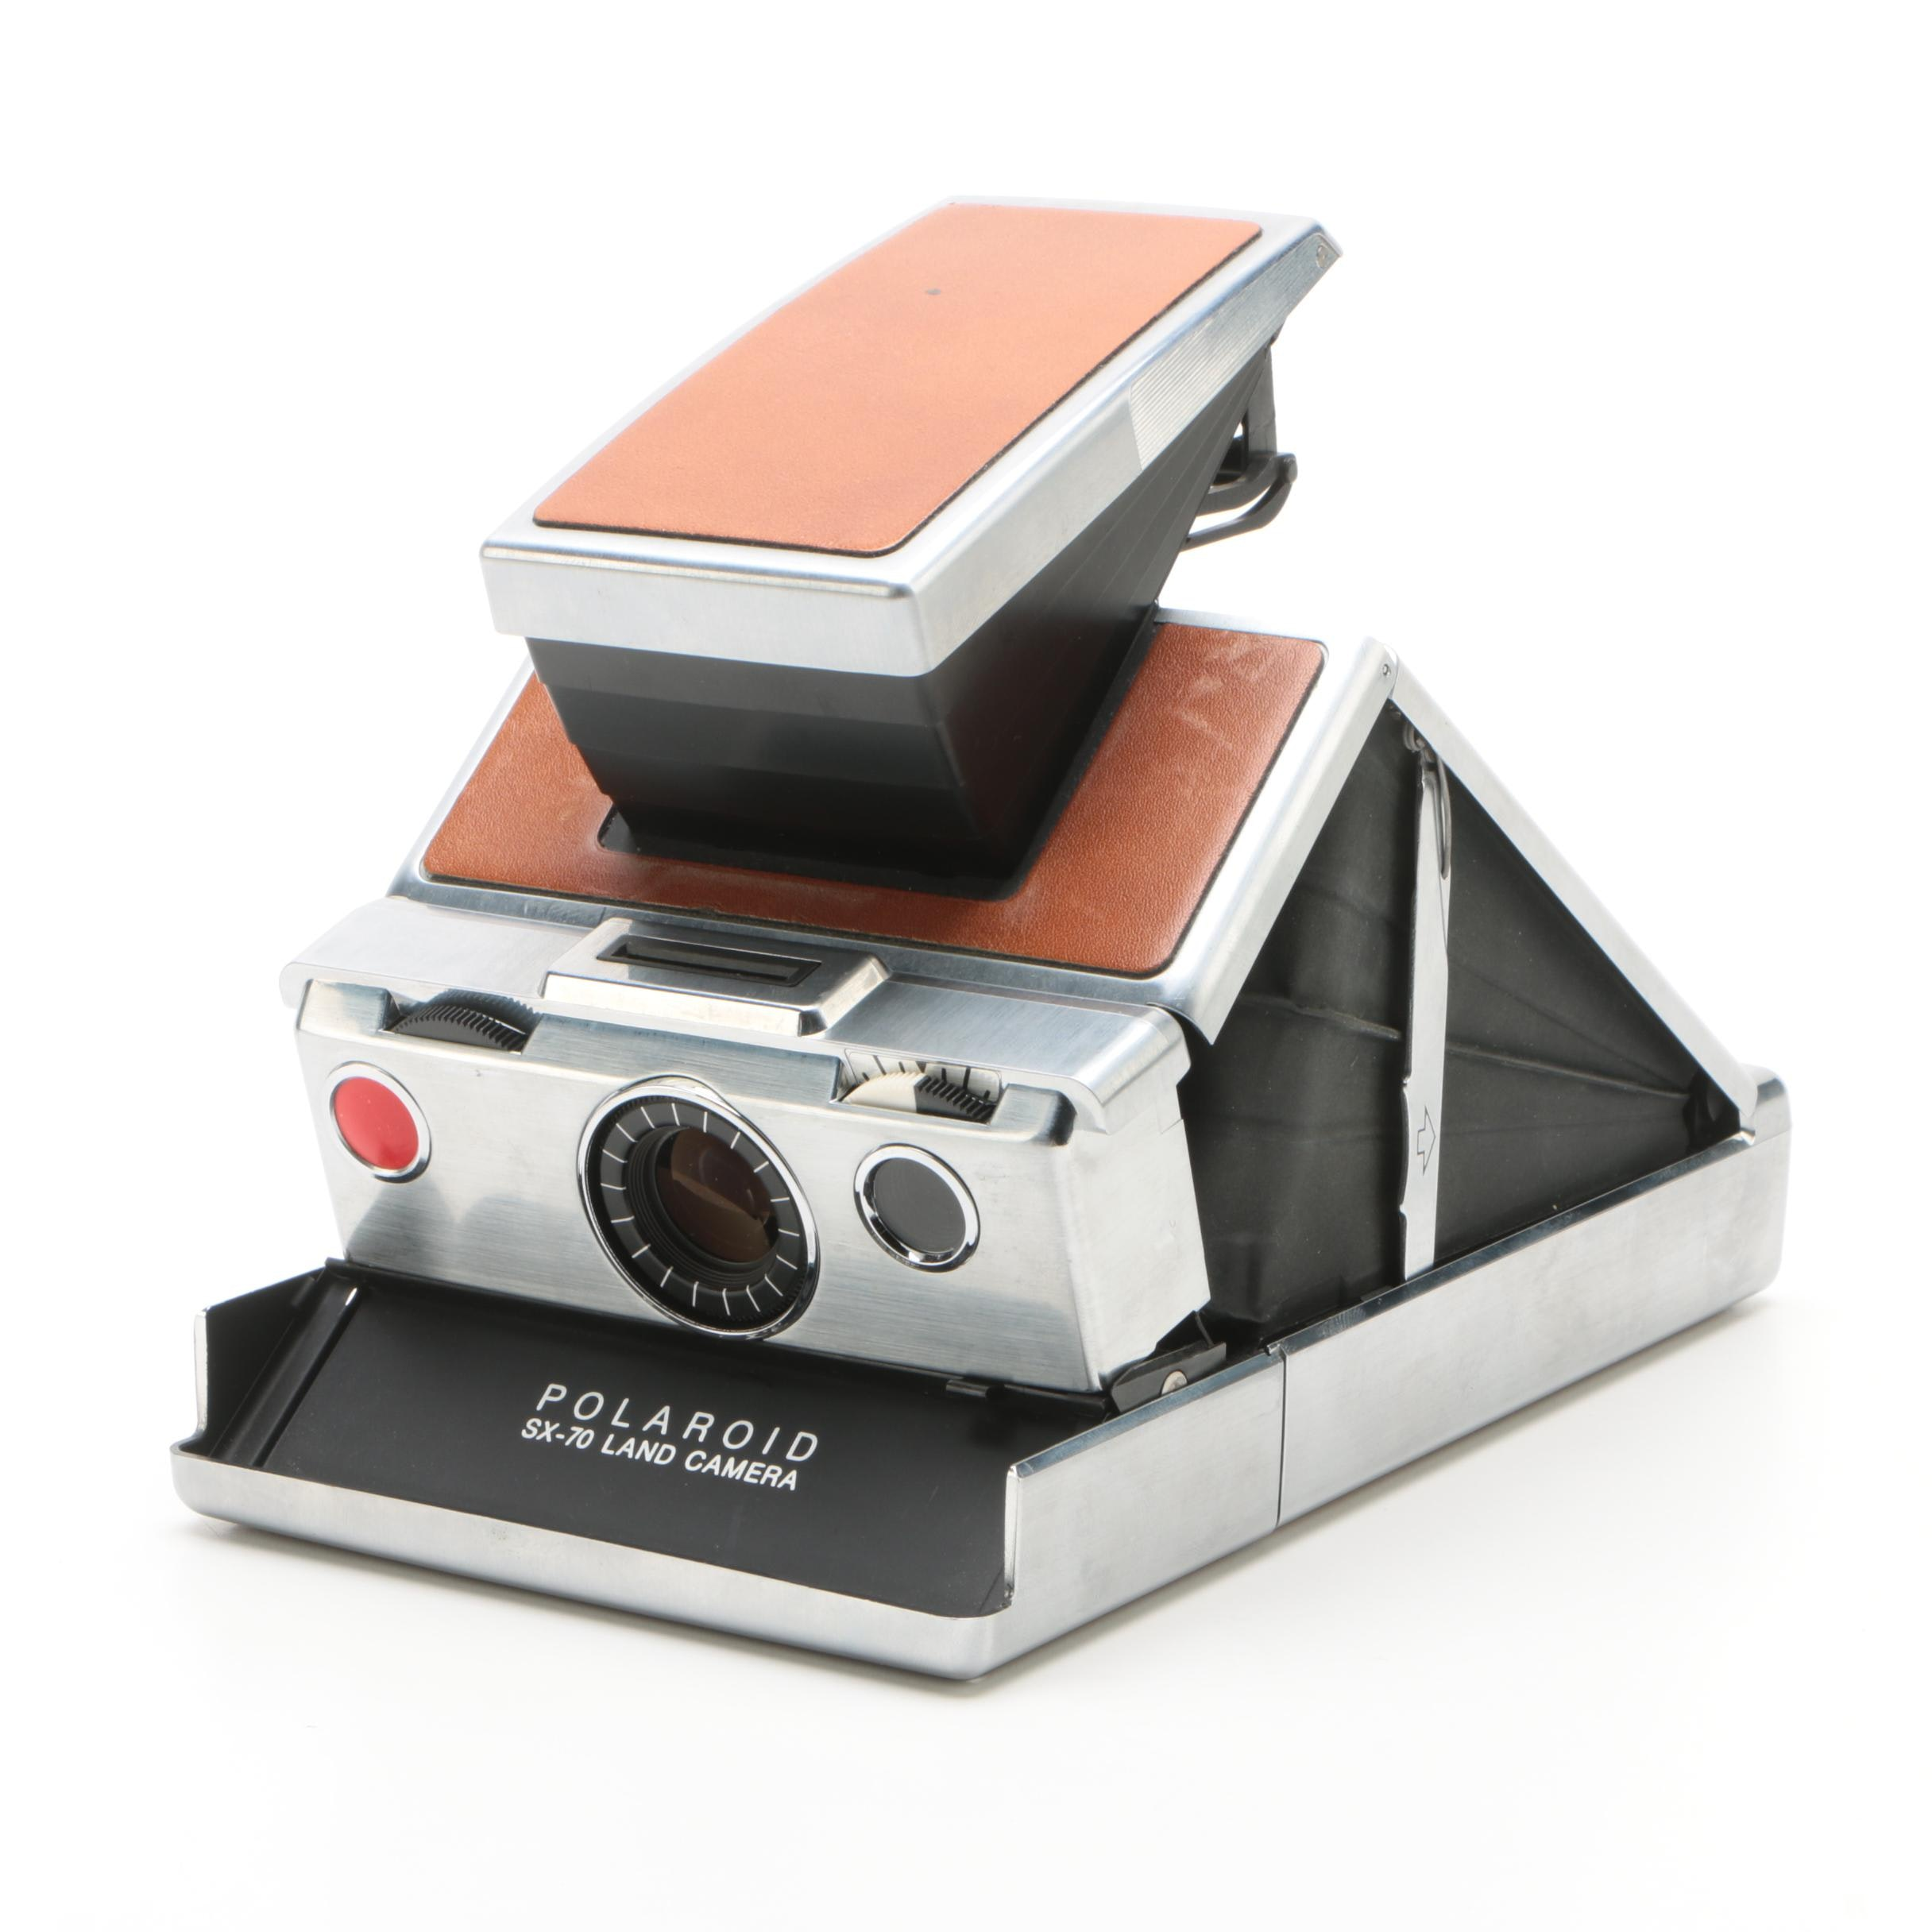 Vintage Polaroid SX-70 Folding Single-Lens Reflex Land Camera